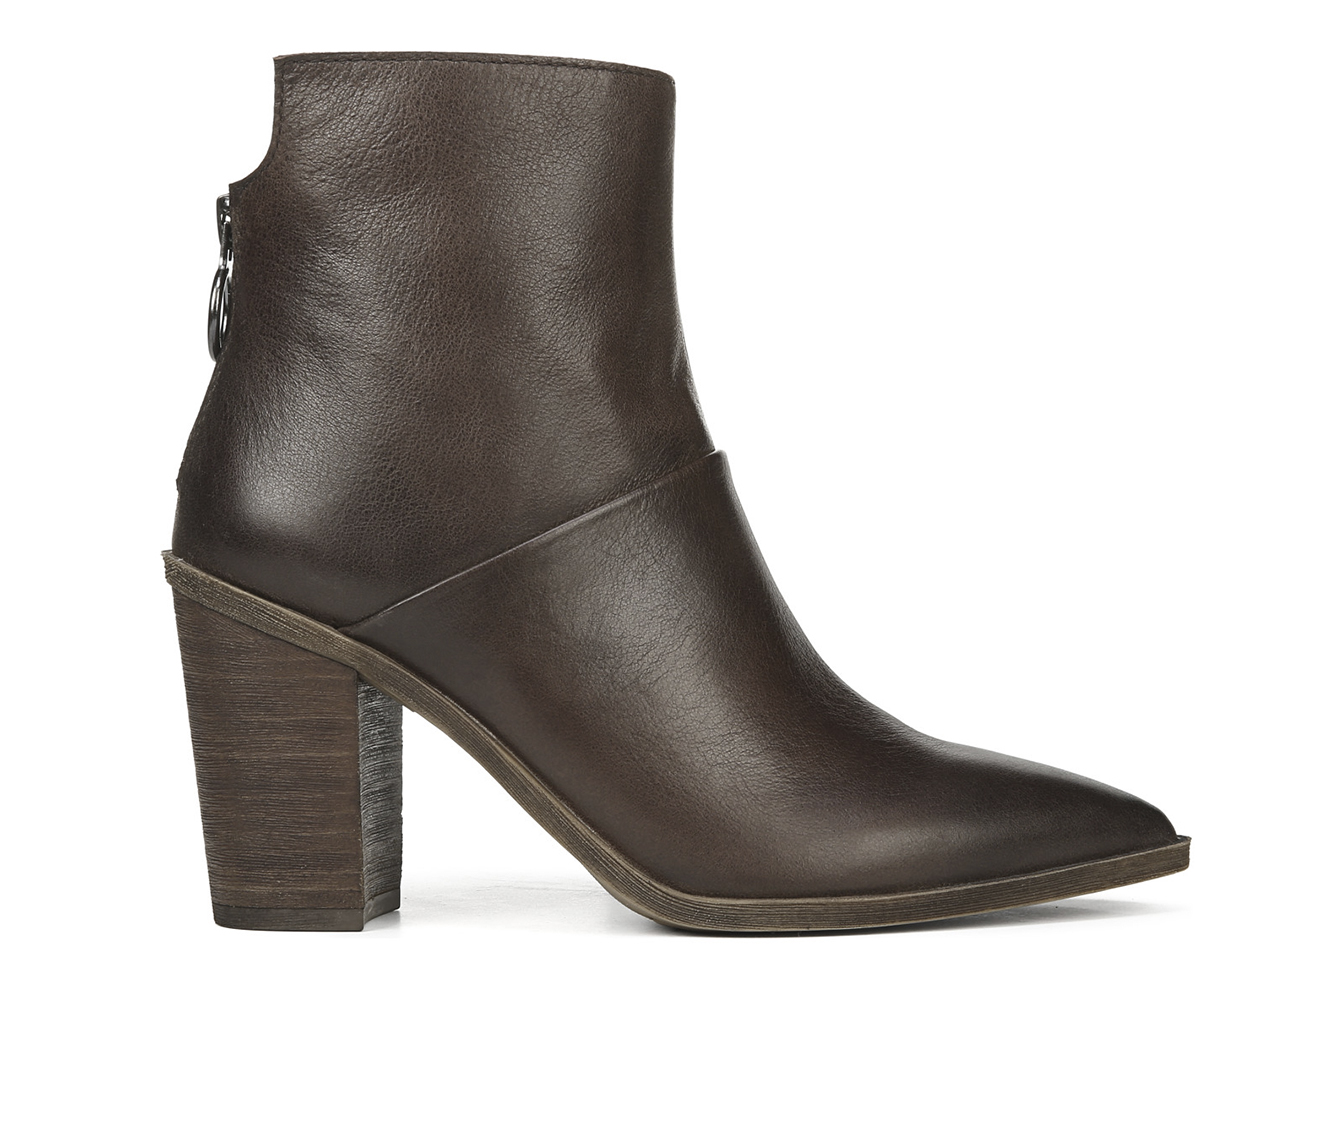 Franco Sarto Mack Women's Boots (Brown - Leather)